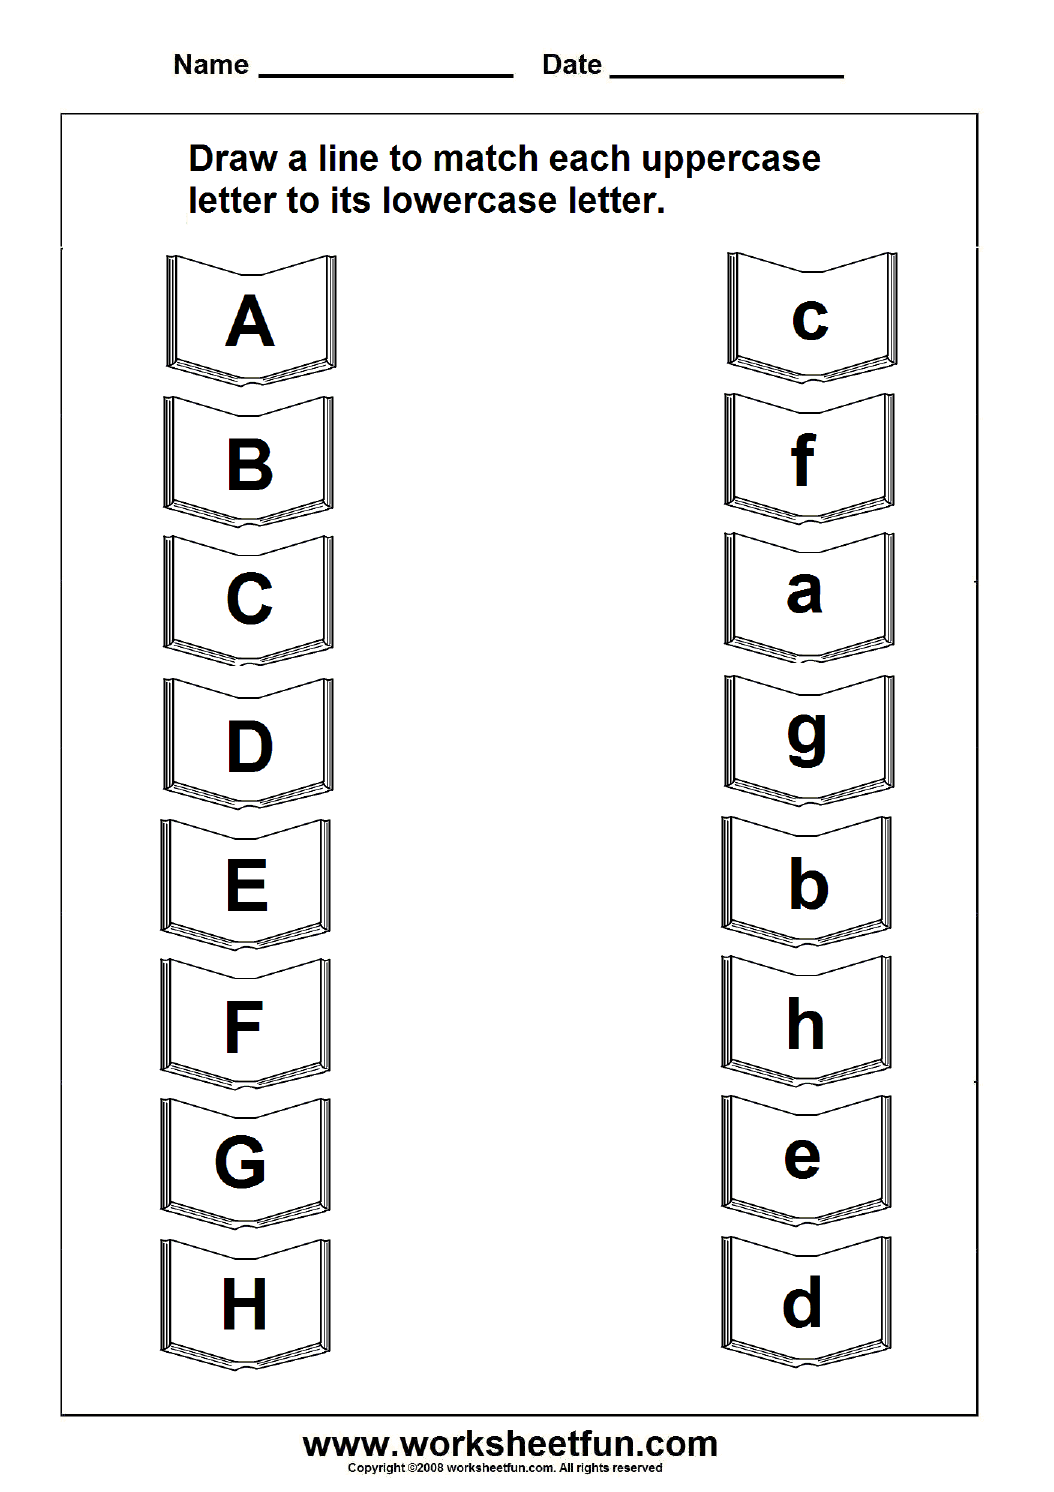 graphic about Upper and Lowercase Letters Printable identify uppercase lowercase letter Schooling Letter worksheets